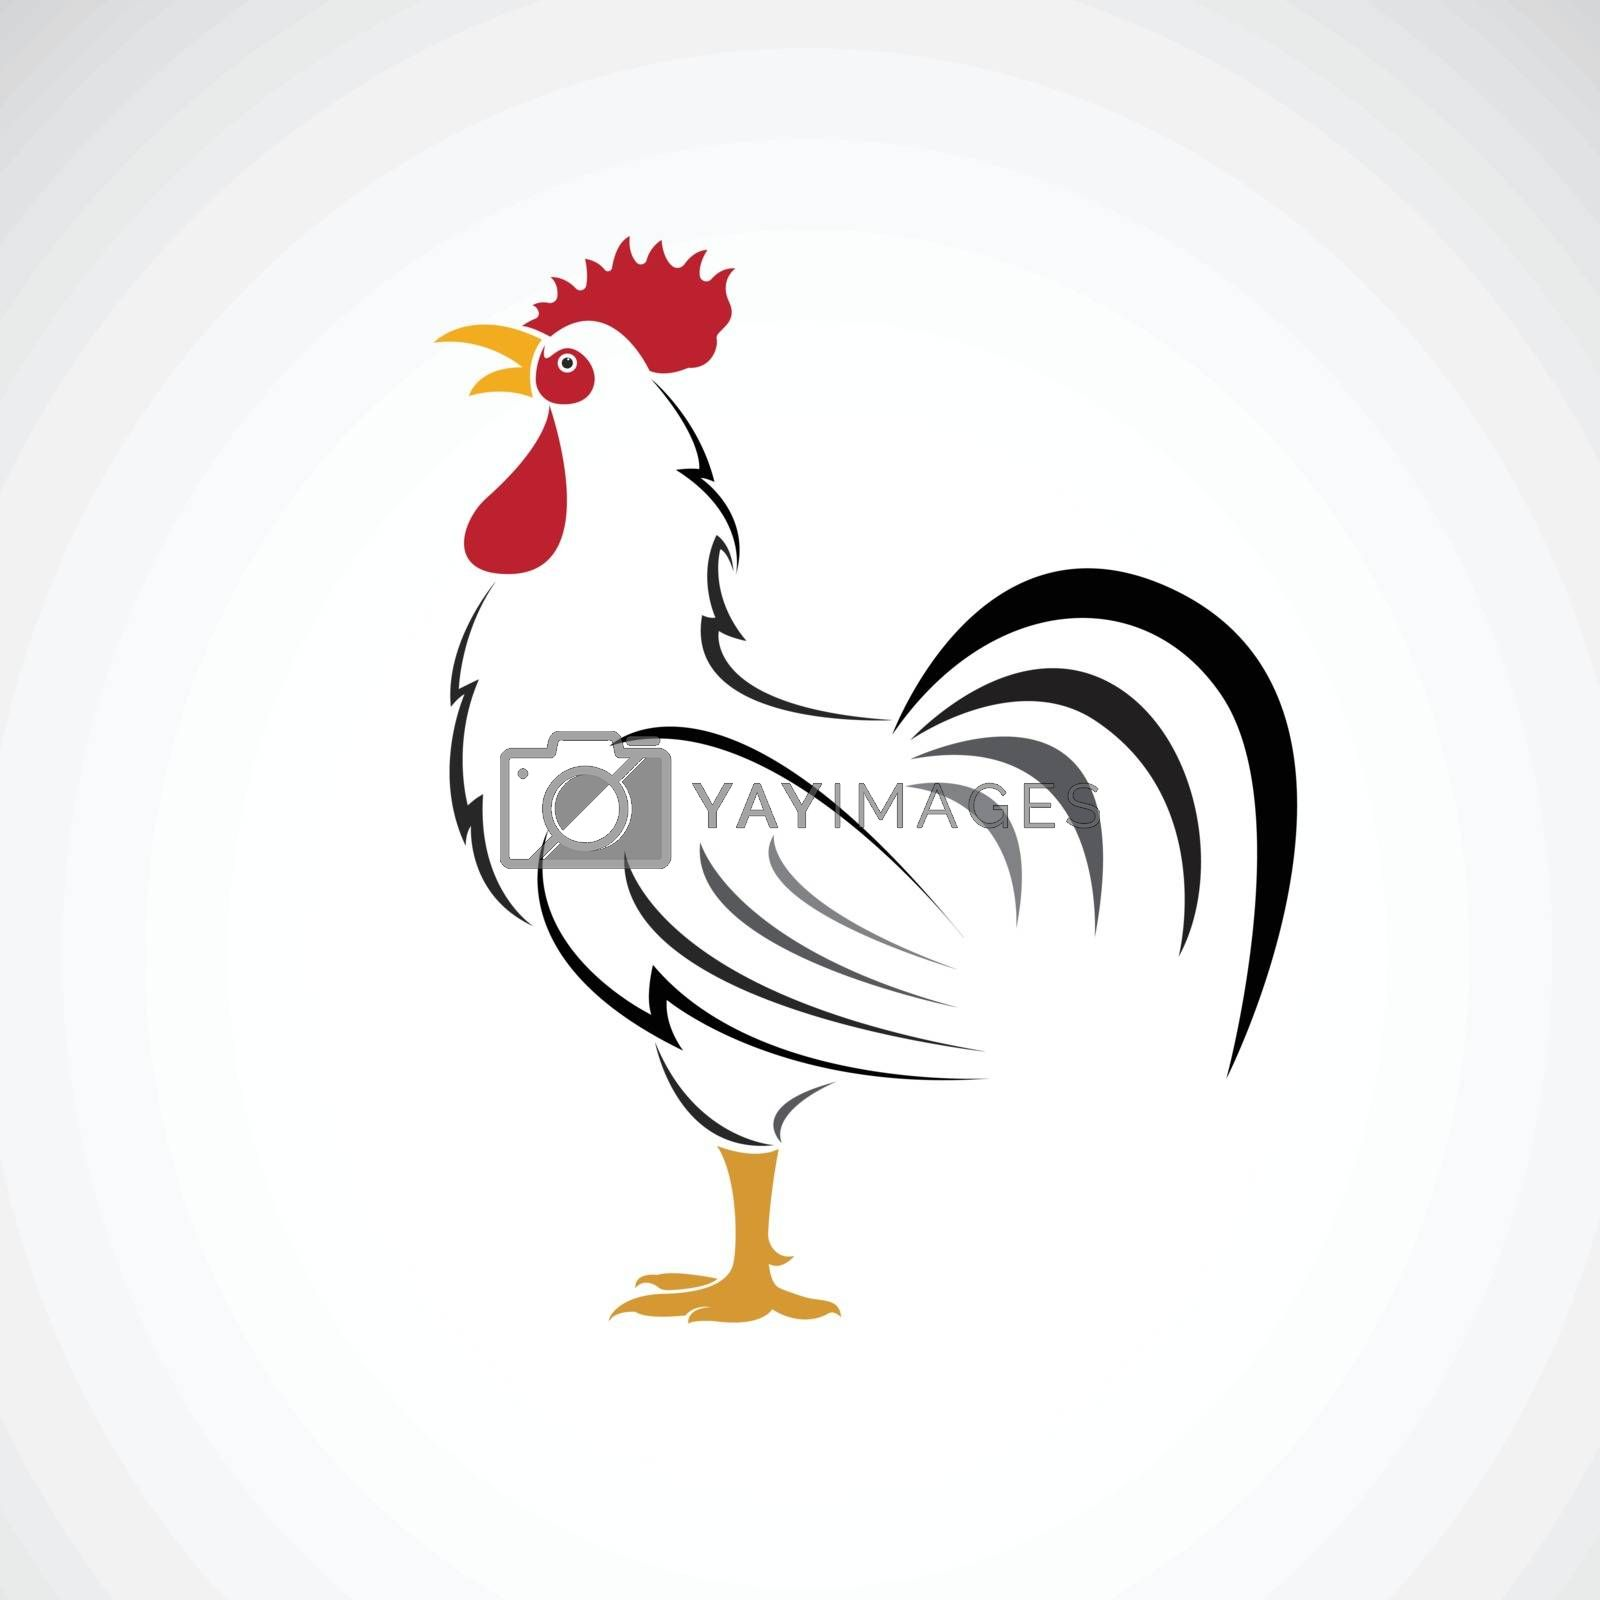 Vector of rooster or cock design on white background. Farm Animal. Chicken logos or icons. Easy editable layered vector illustration.